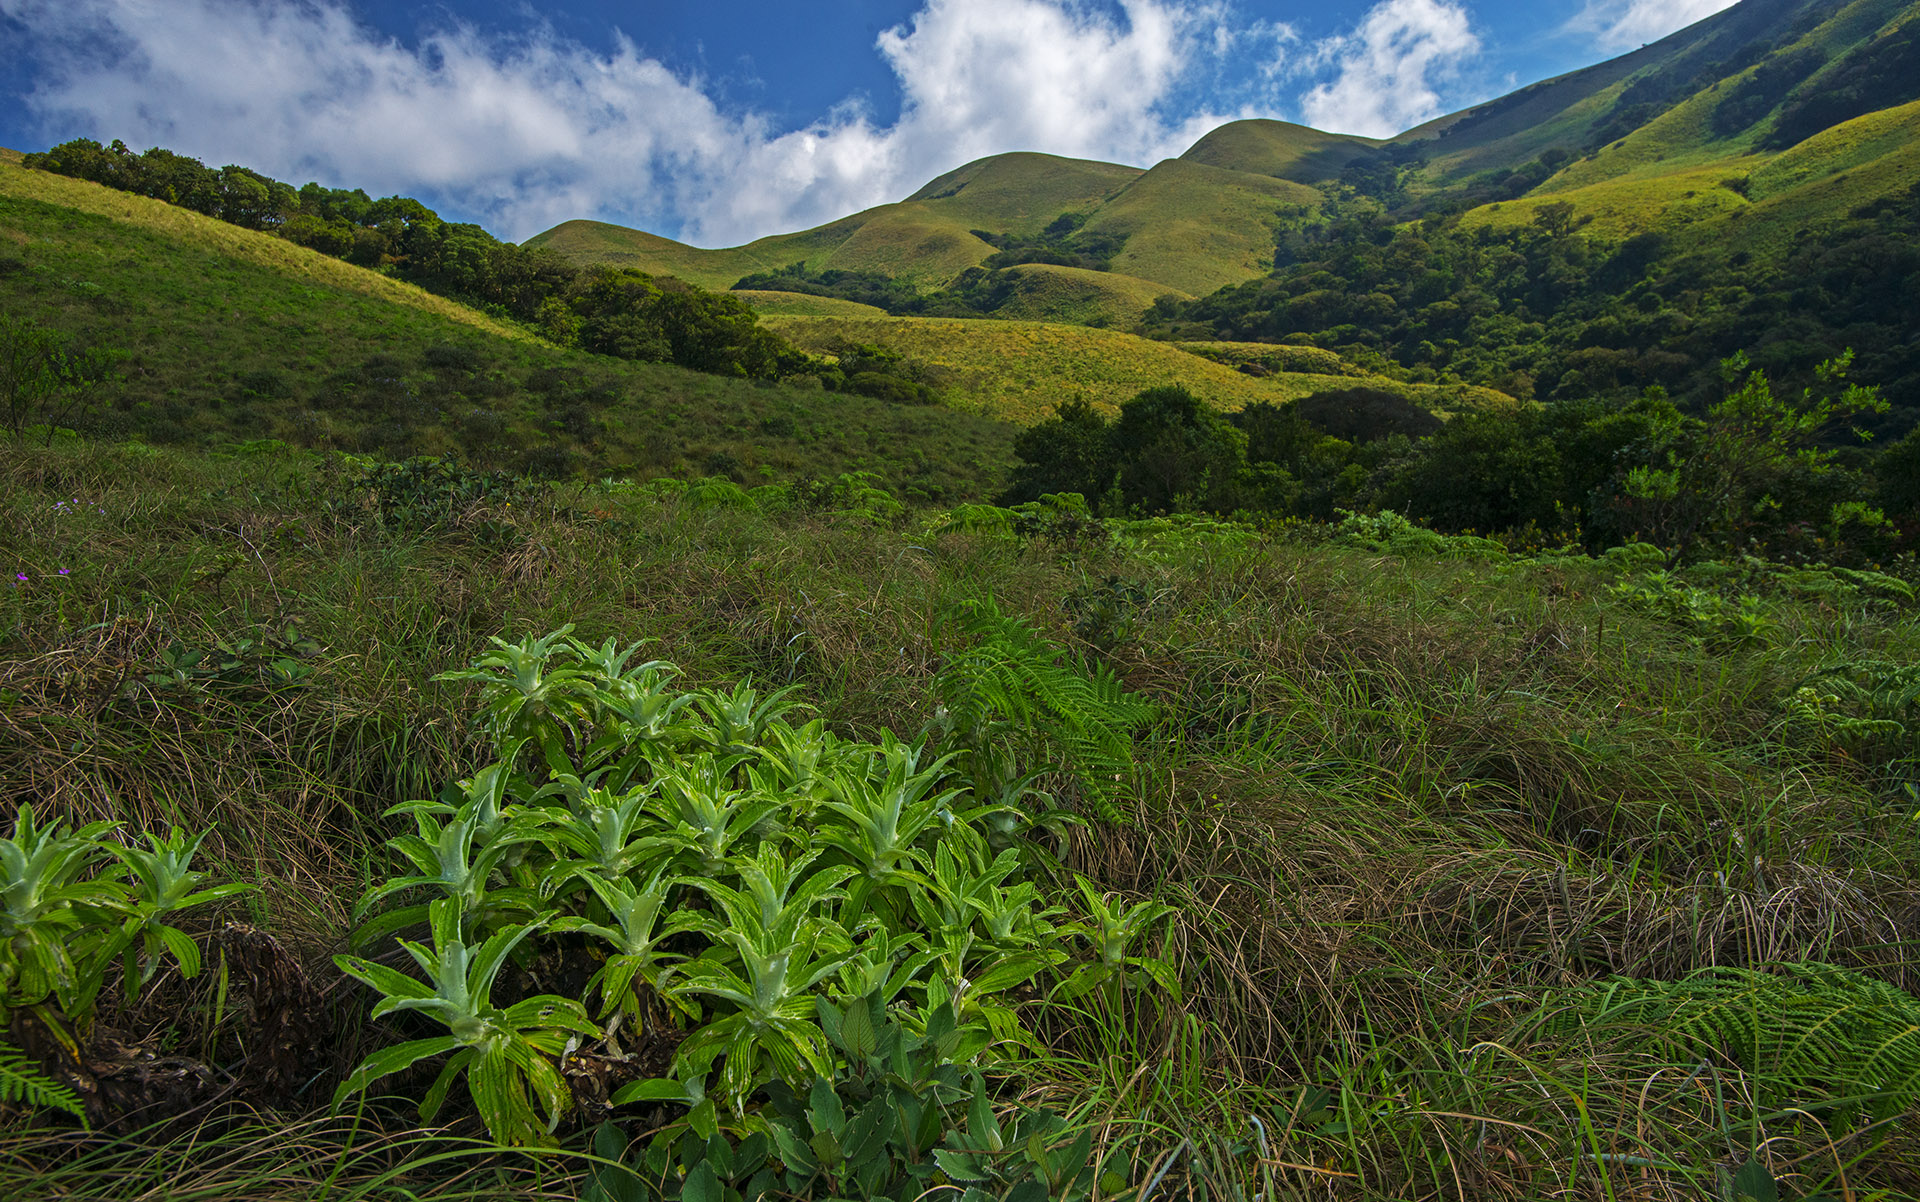 The shola grasslands found along the higher elevations of these hills are home to several threatened and endemic species.